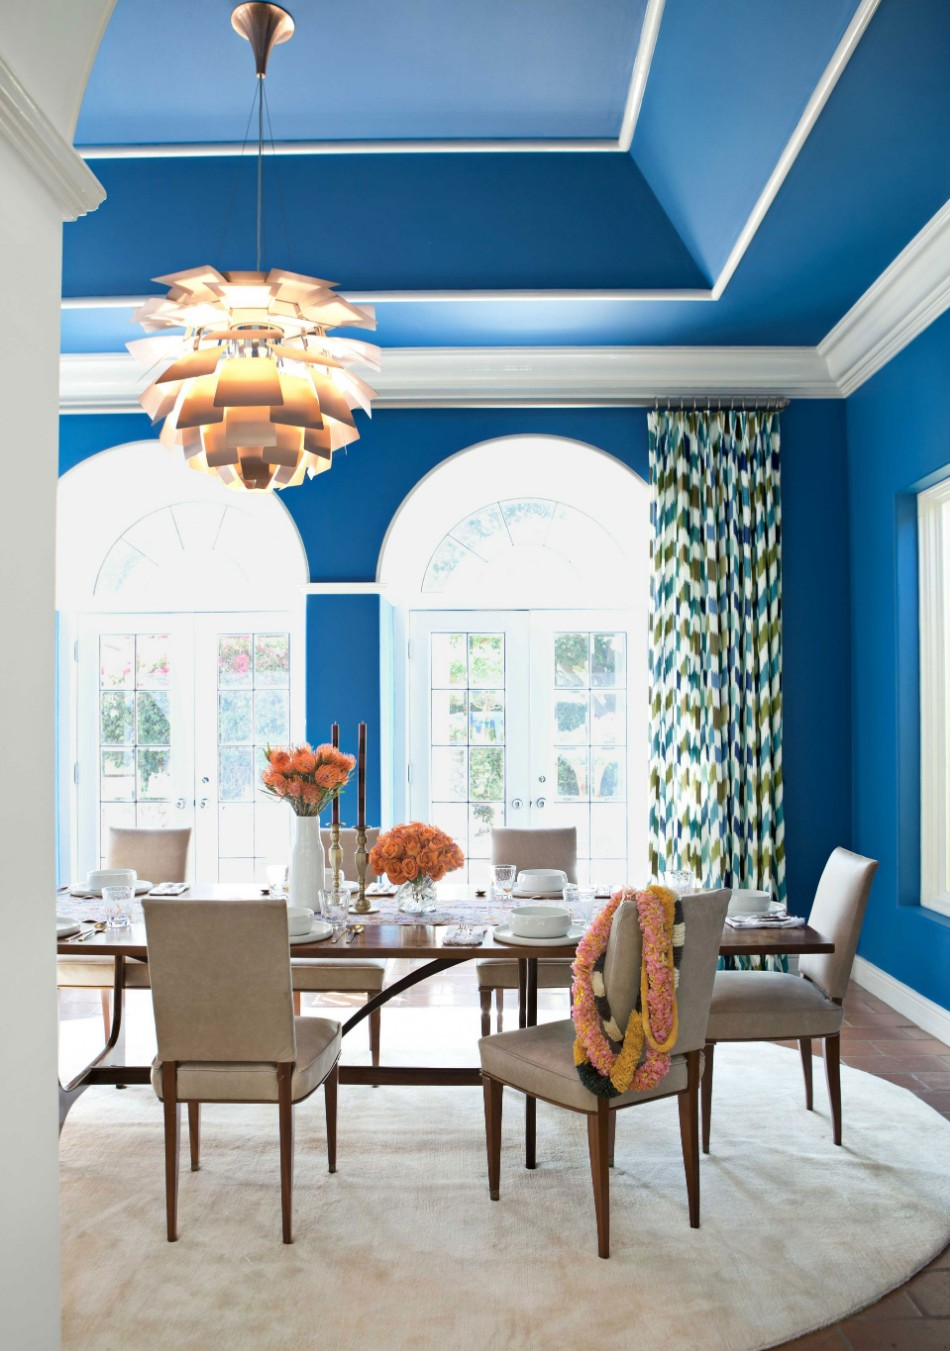 colors 10 Colors That Look Amazing In The Dining Room Area blue